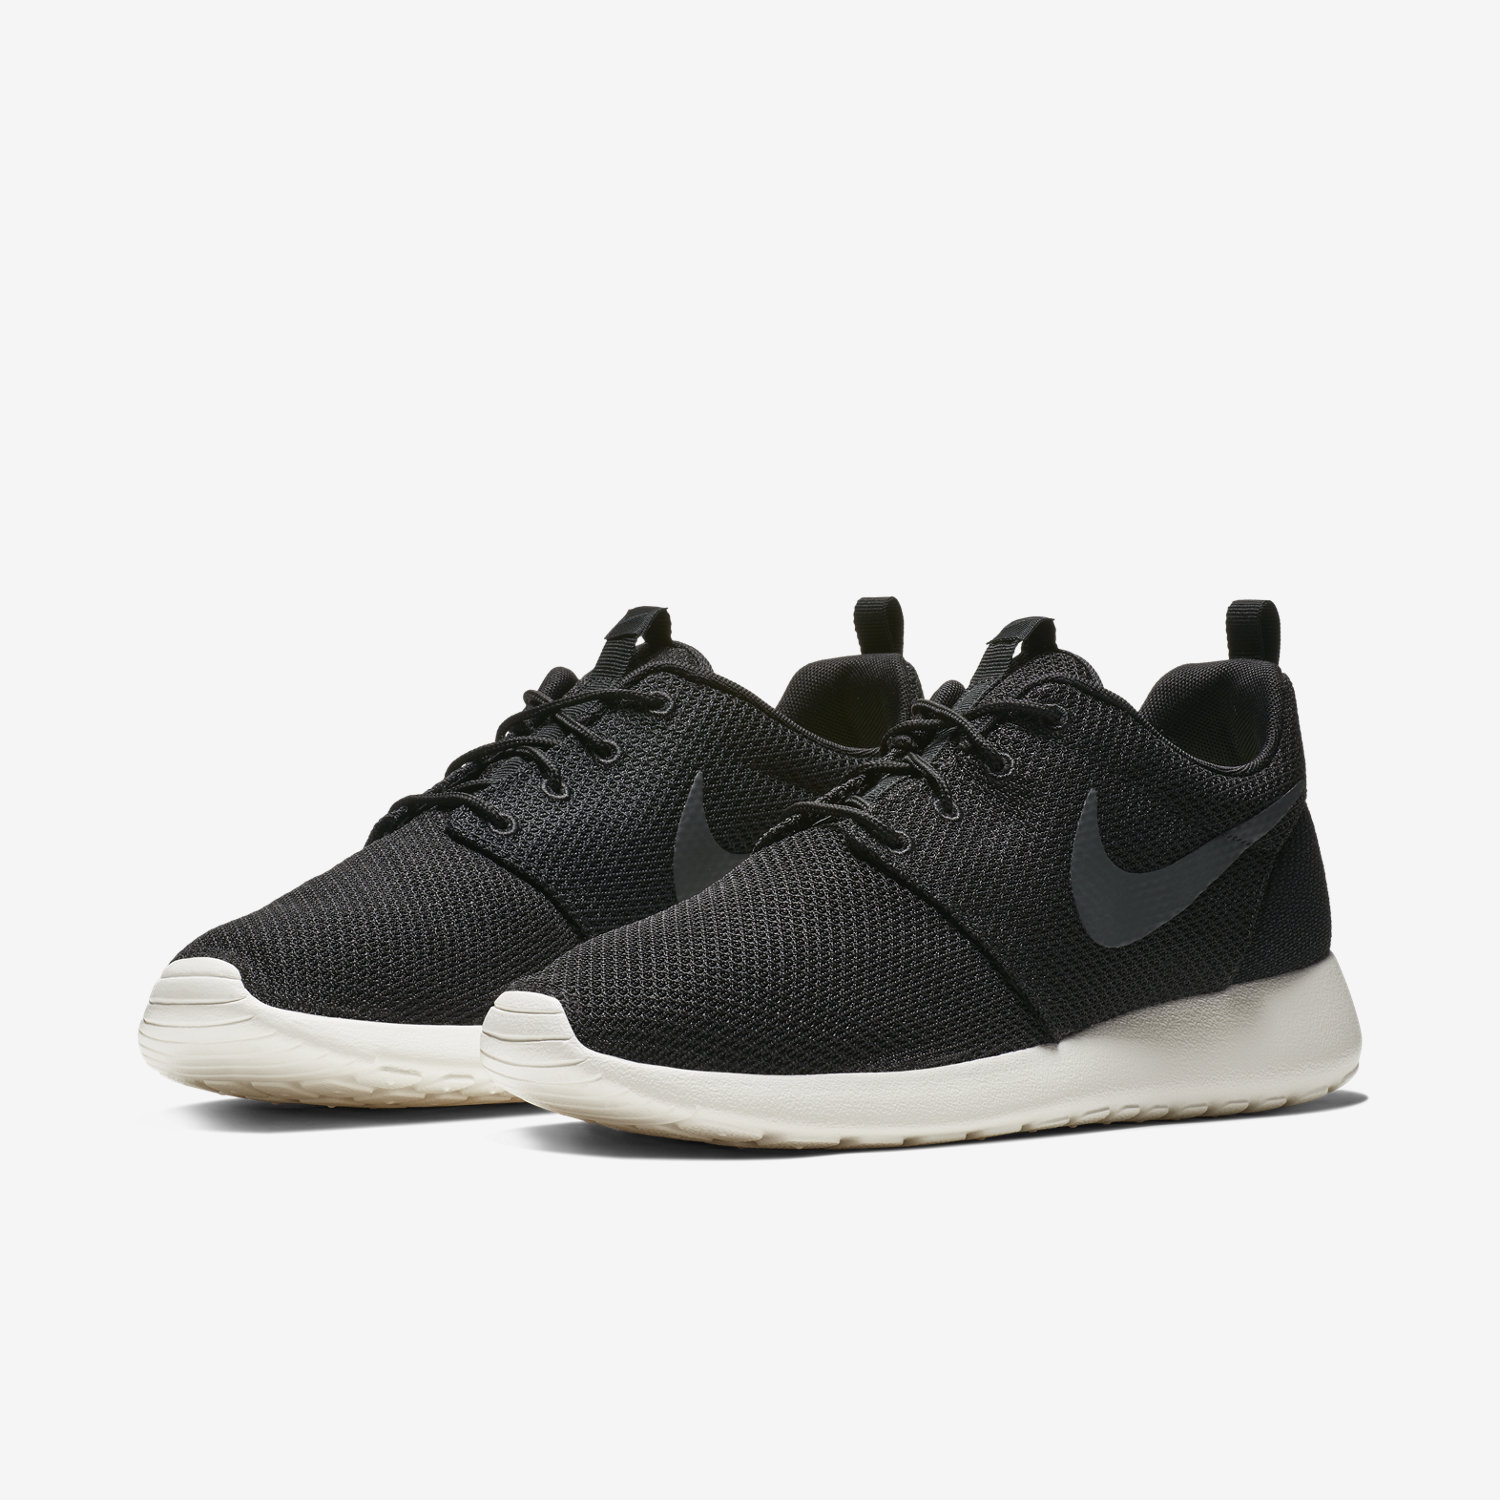 Women's Nike Free OG Superior Running Shoes